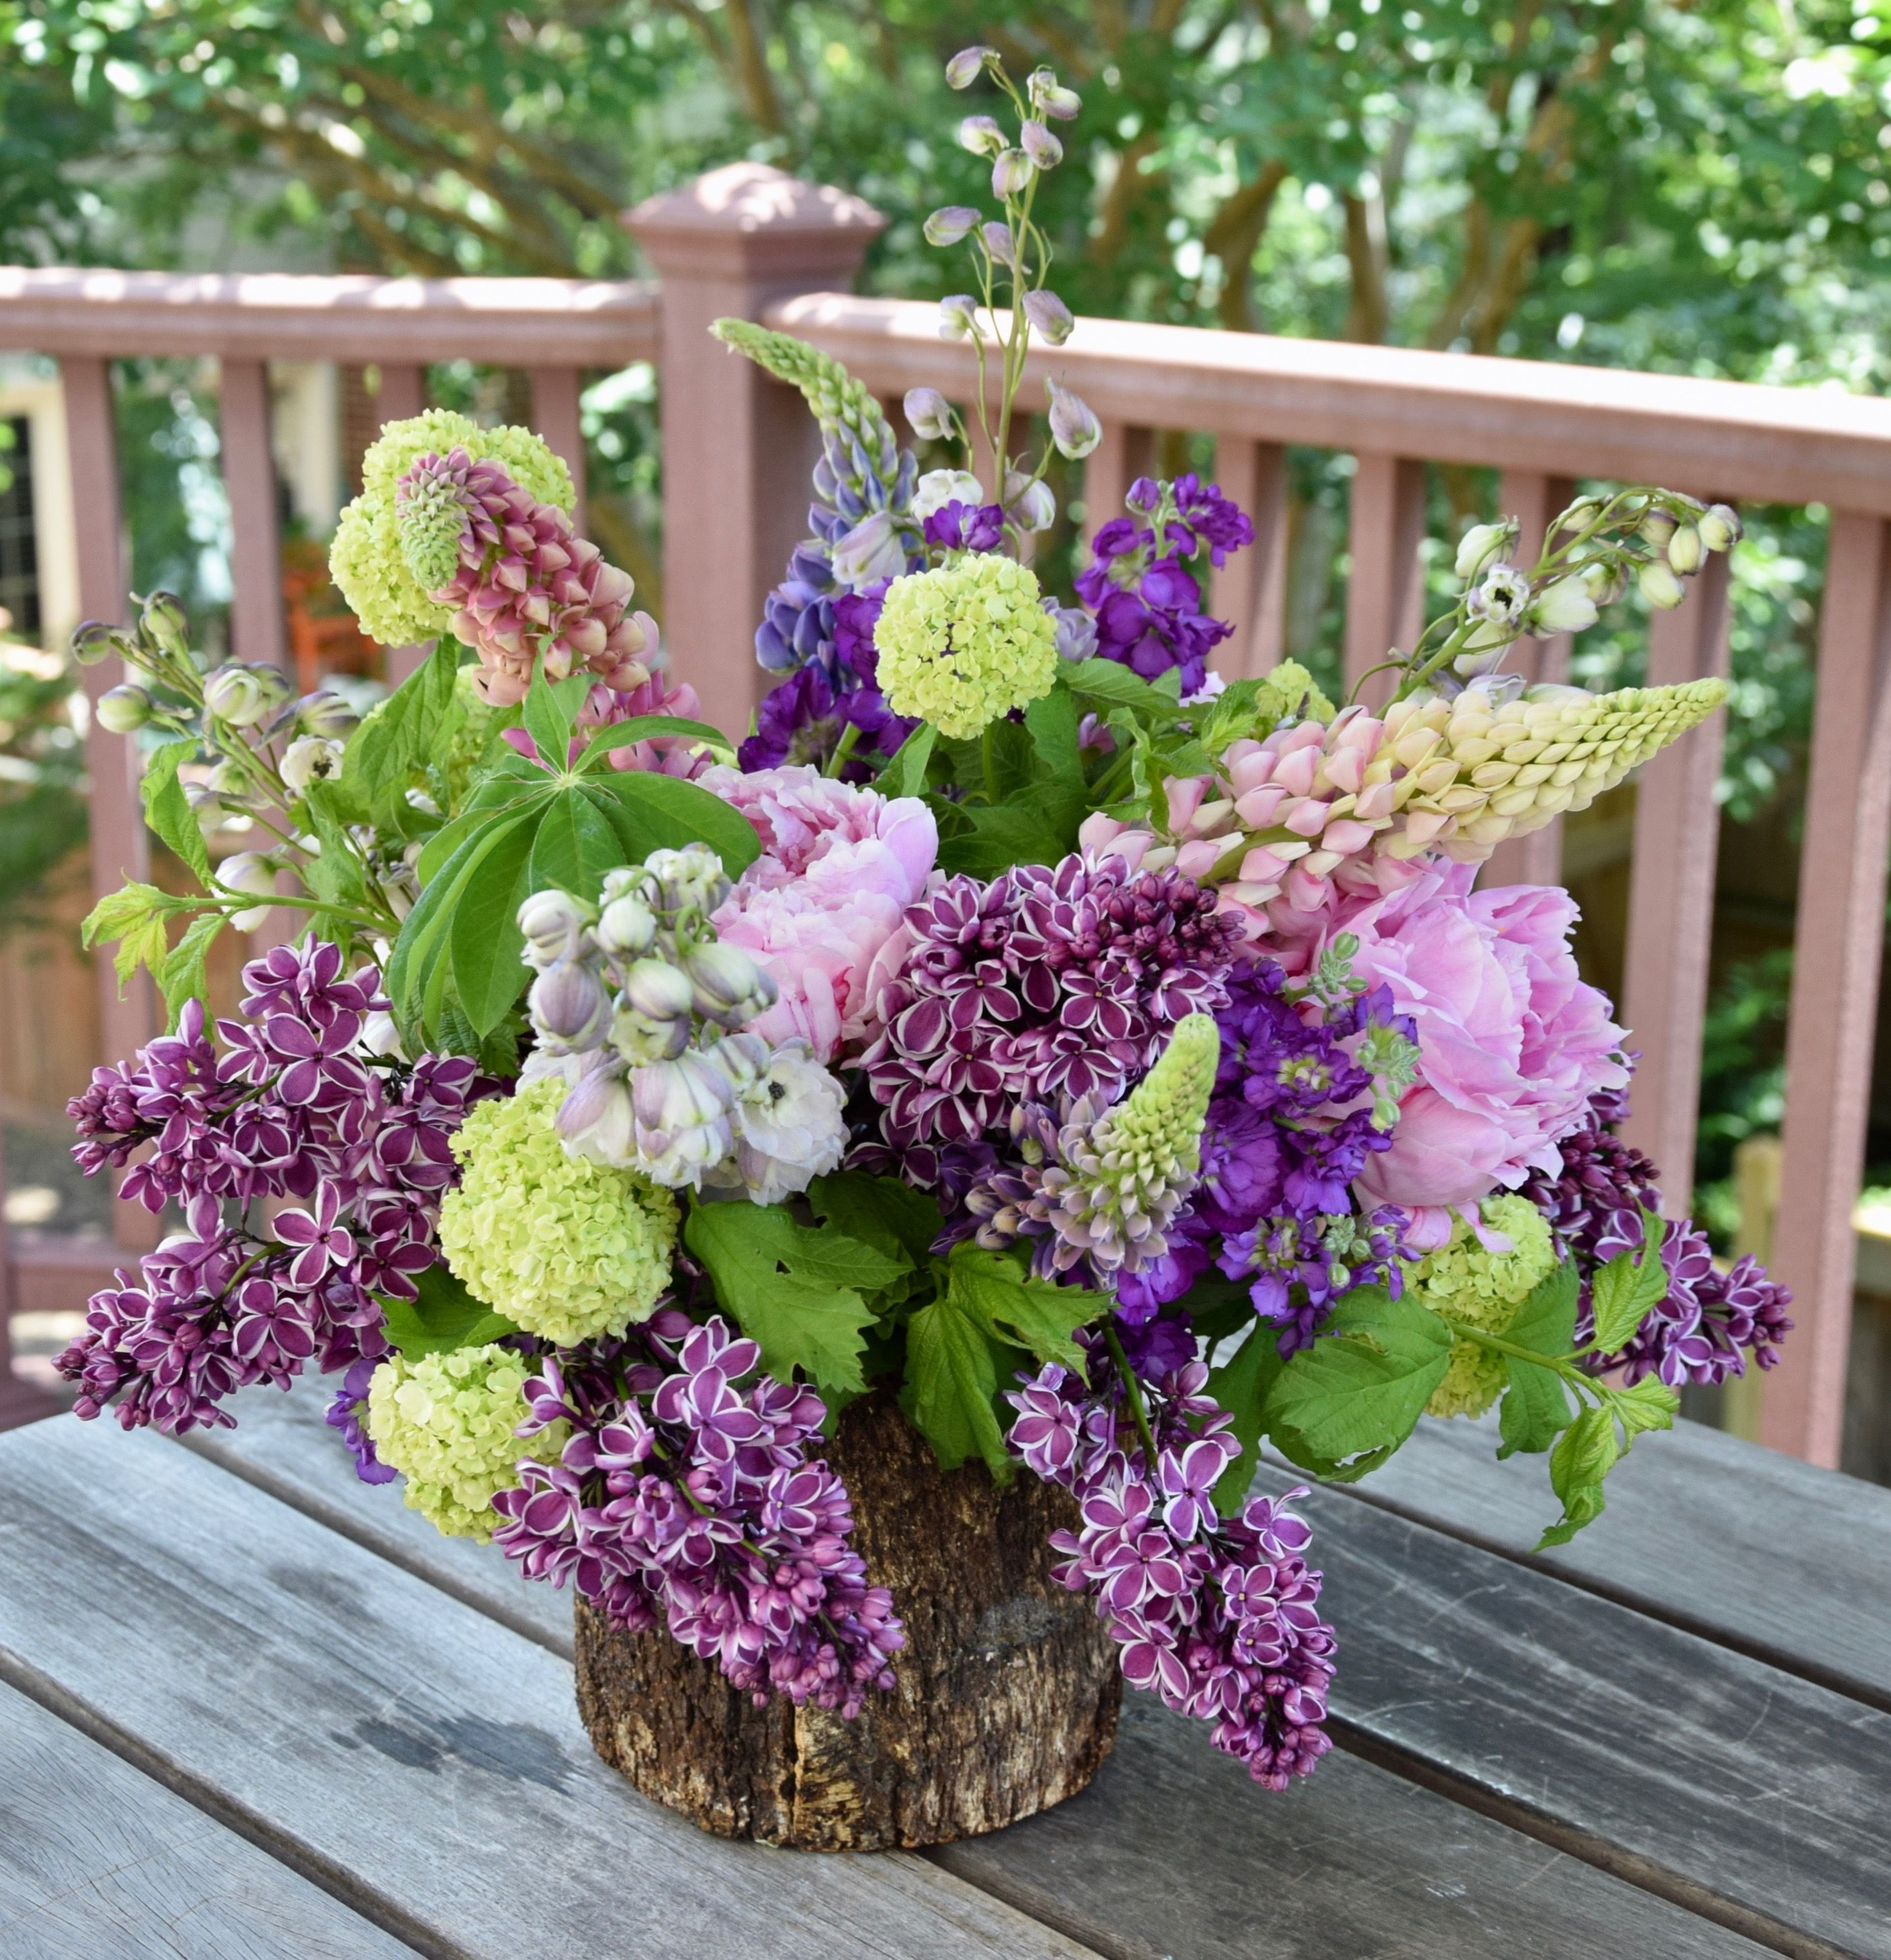 Large Flower Arrangement With Green Viburnum Lupine Lilac Delphinium Stock And Pe Large Flower Arrangements Fresh Flowers Arrangements Flower Arrangements